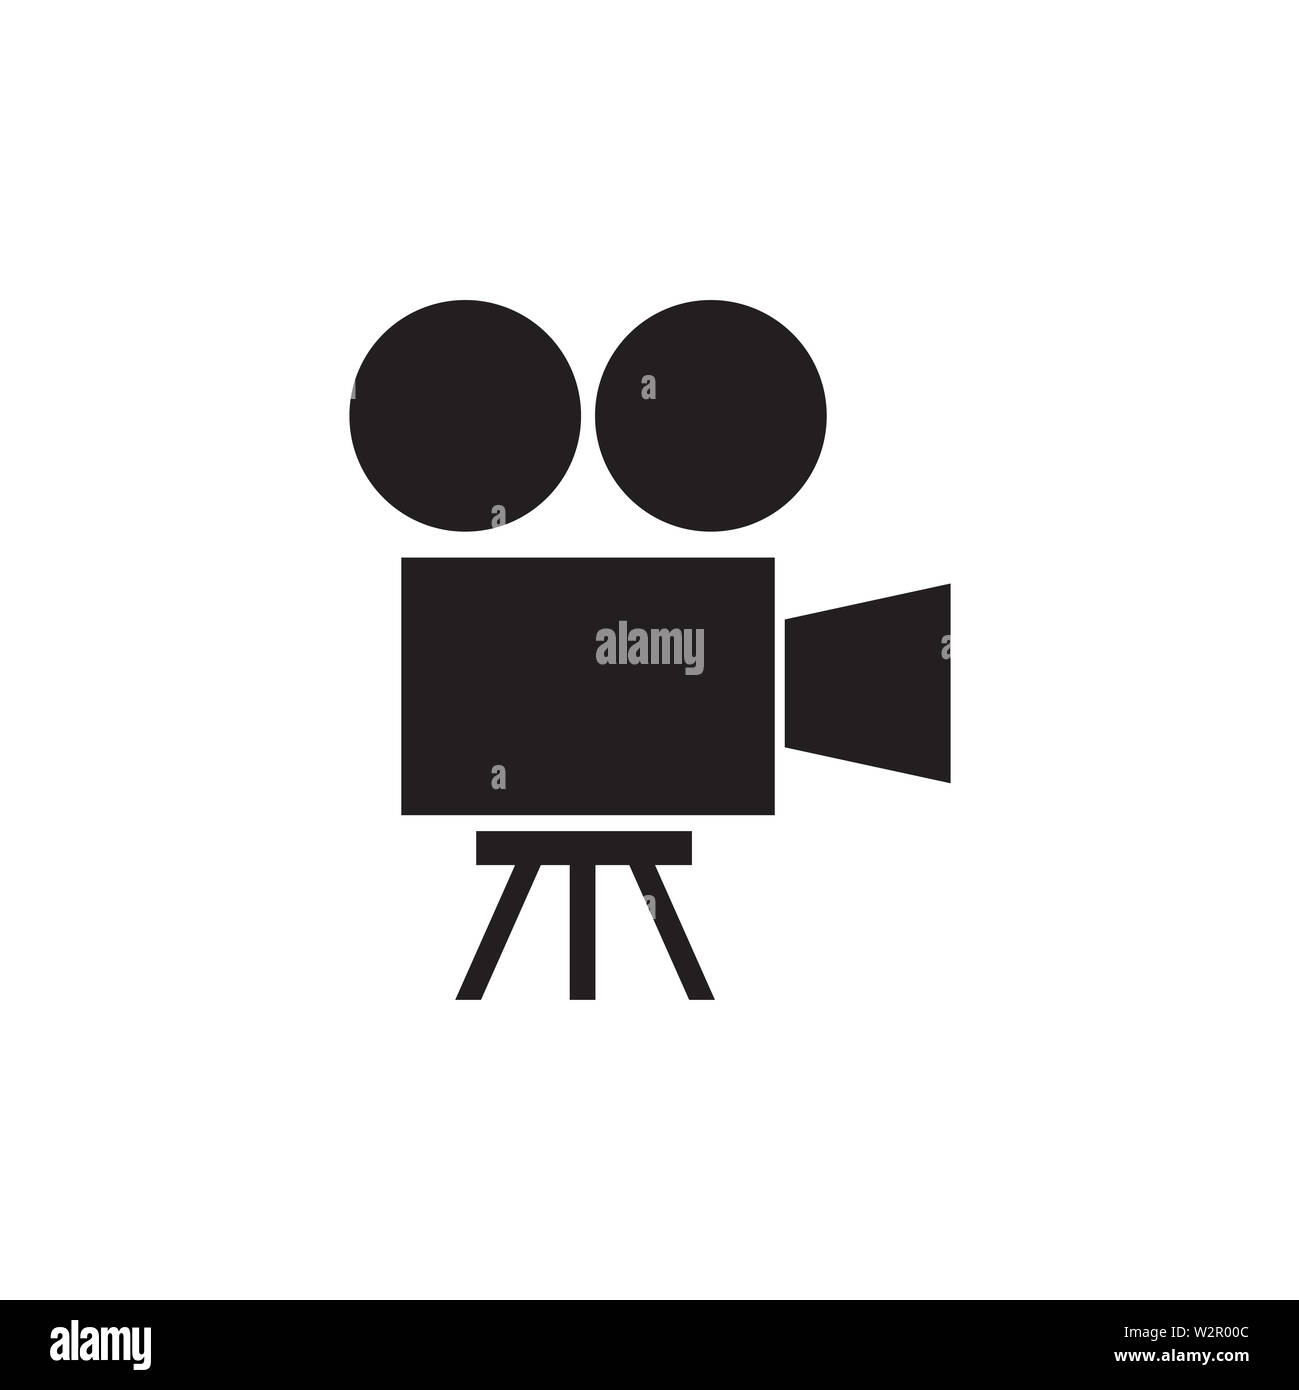 Film Camera Icon In Flat Style Vector For Apps, UI, Websites. Black Icon Vector Illustration. - Stock Image